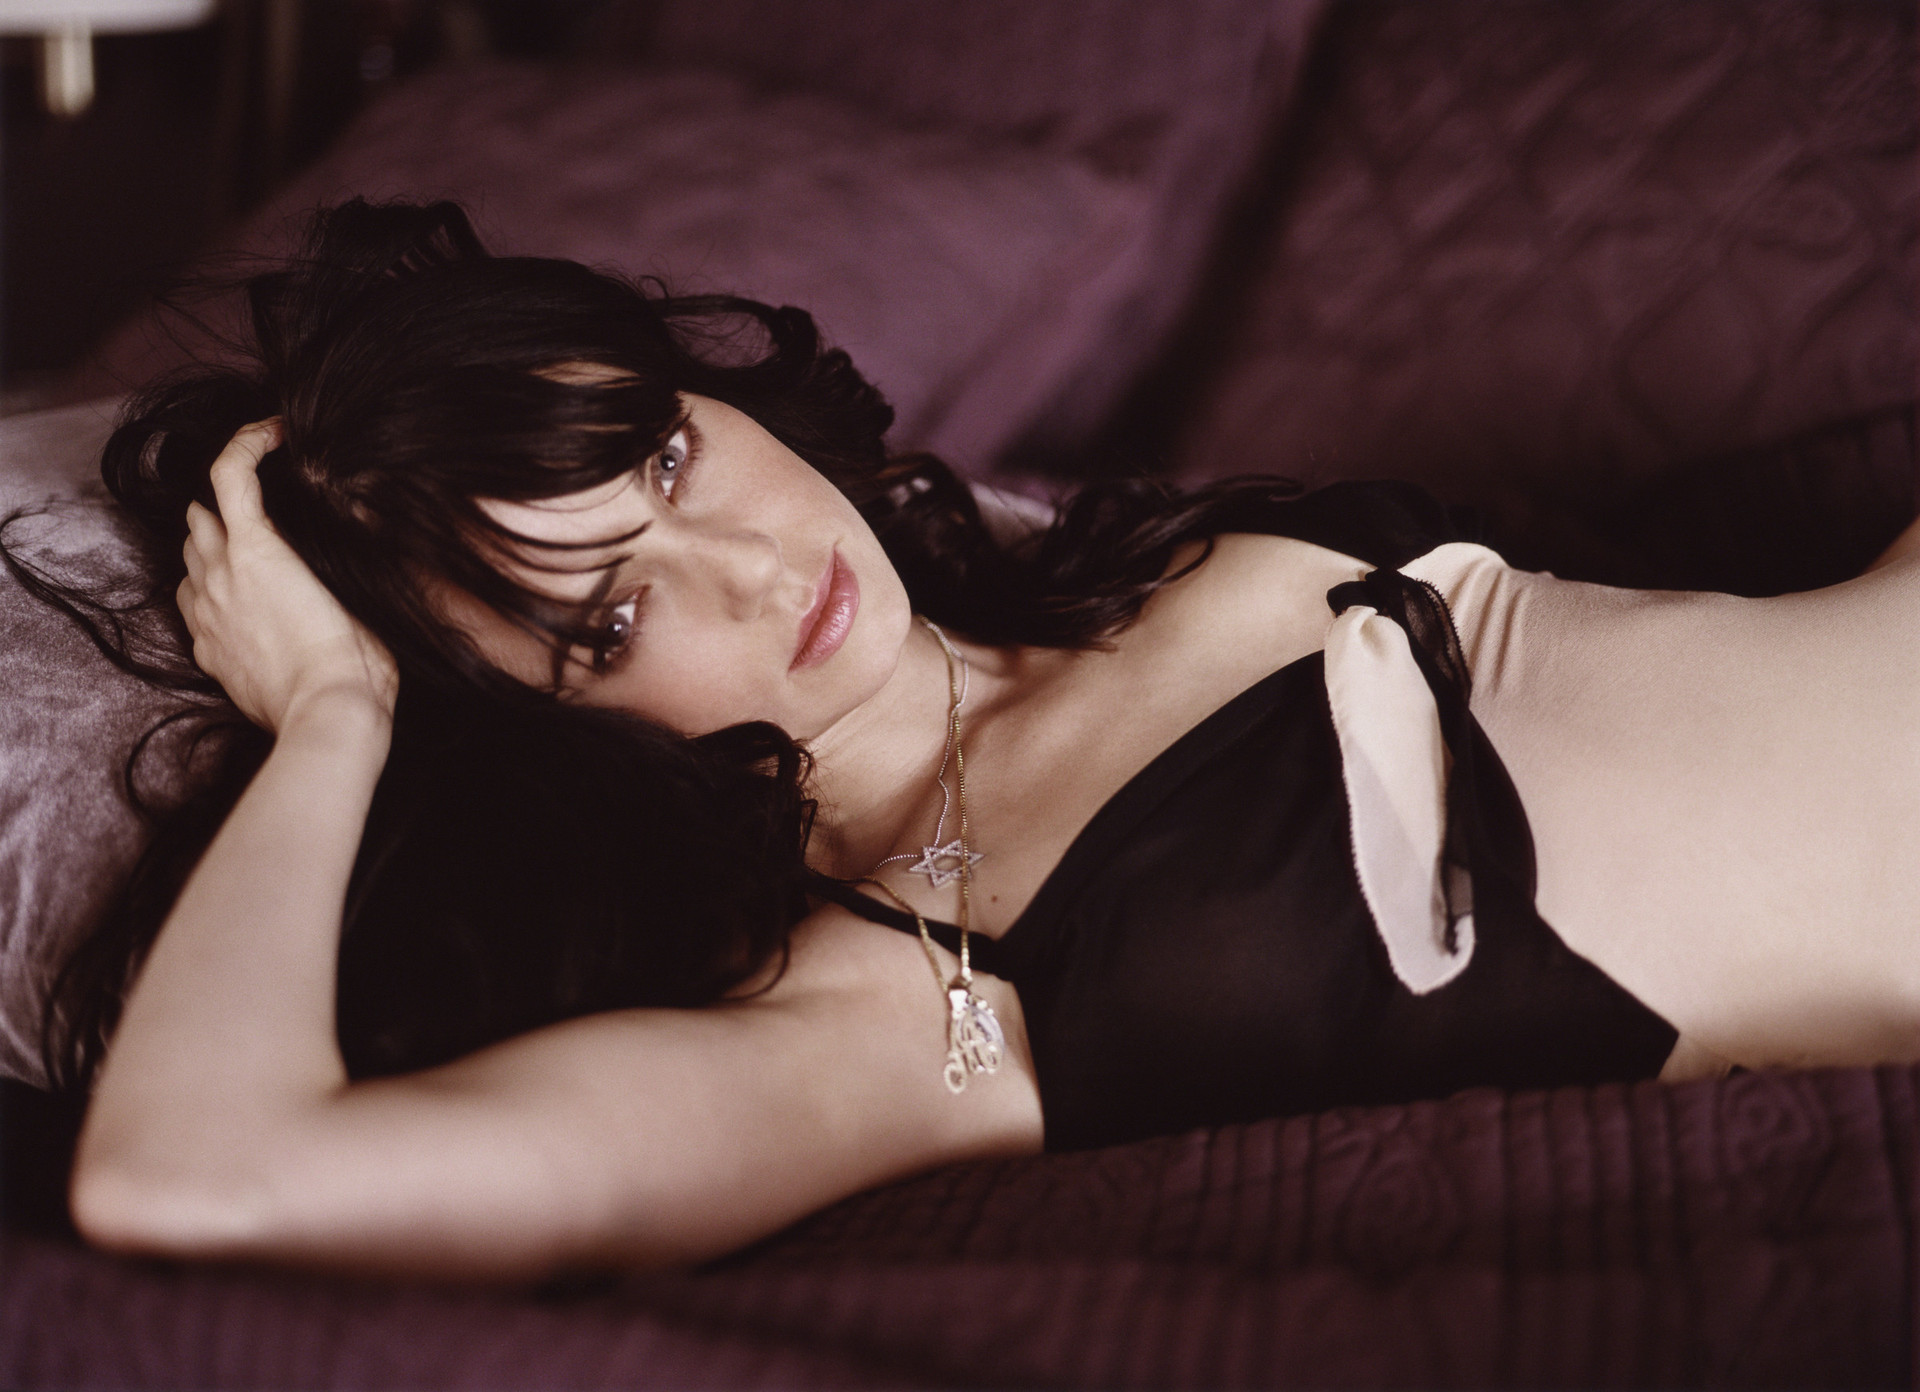 image Mia kirshner the l word 1